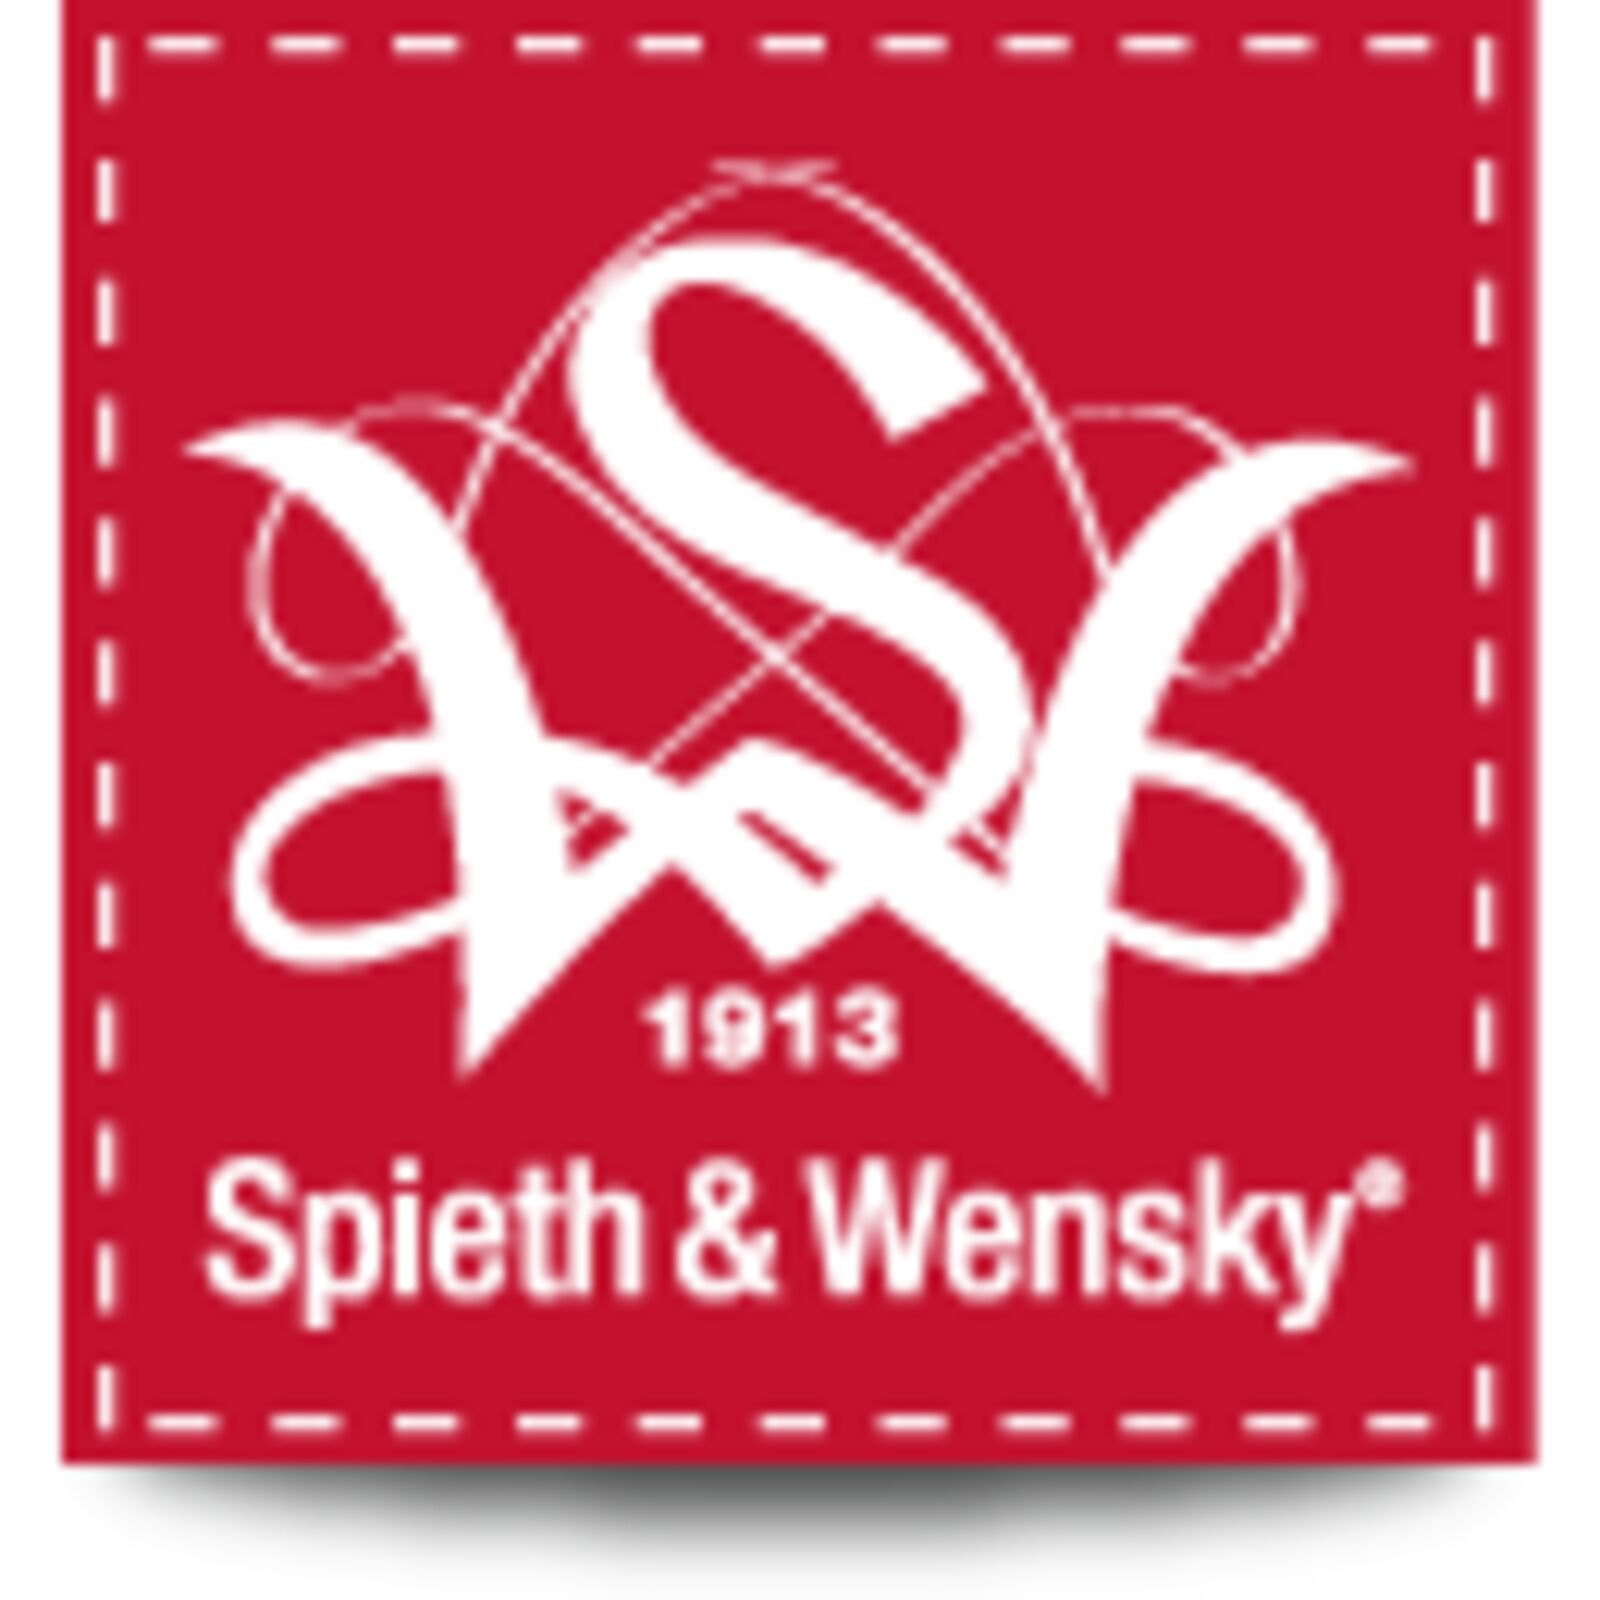 spieth wensky shops in heidelberg thelabelfinder. Black Bedroom Furniture Sets. Home Design Ideas